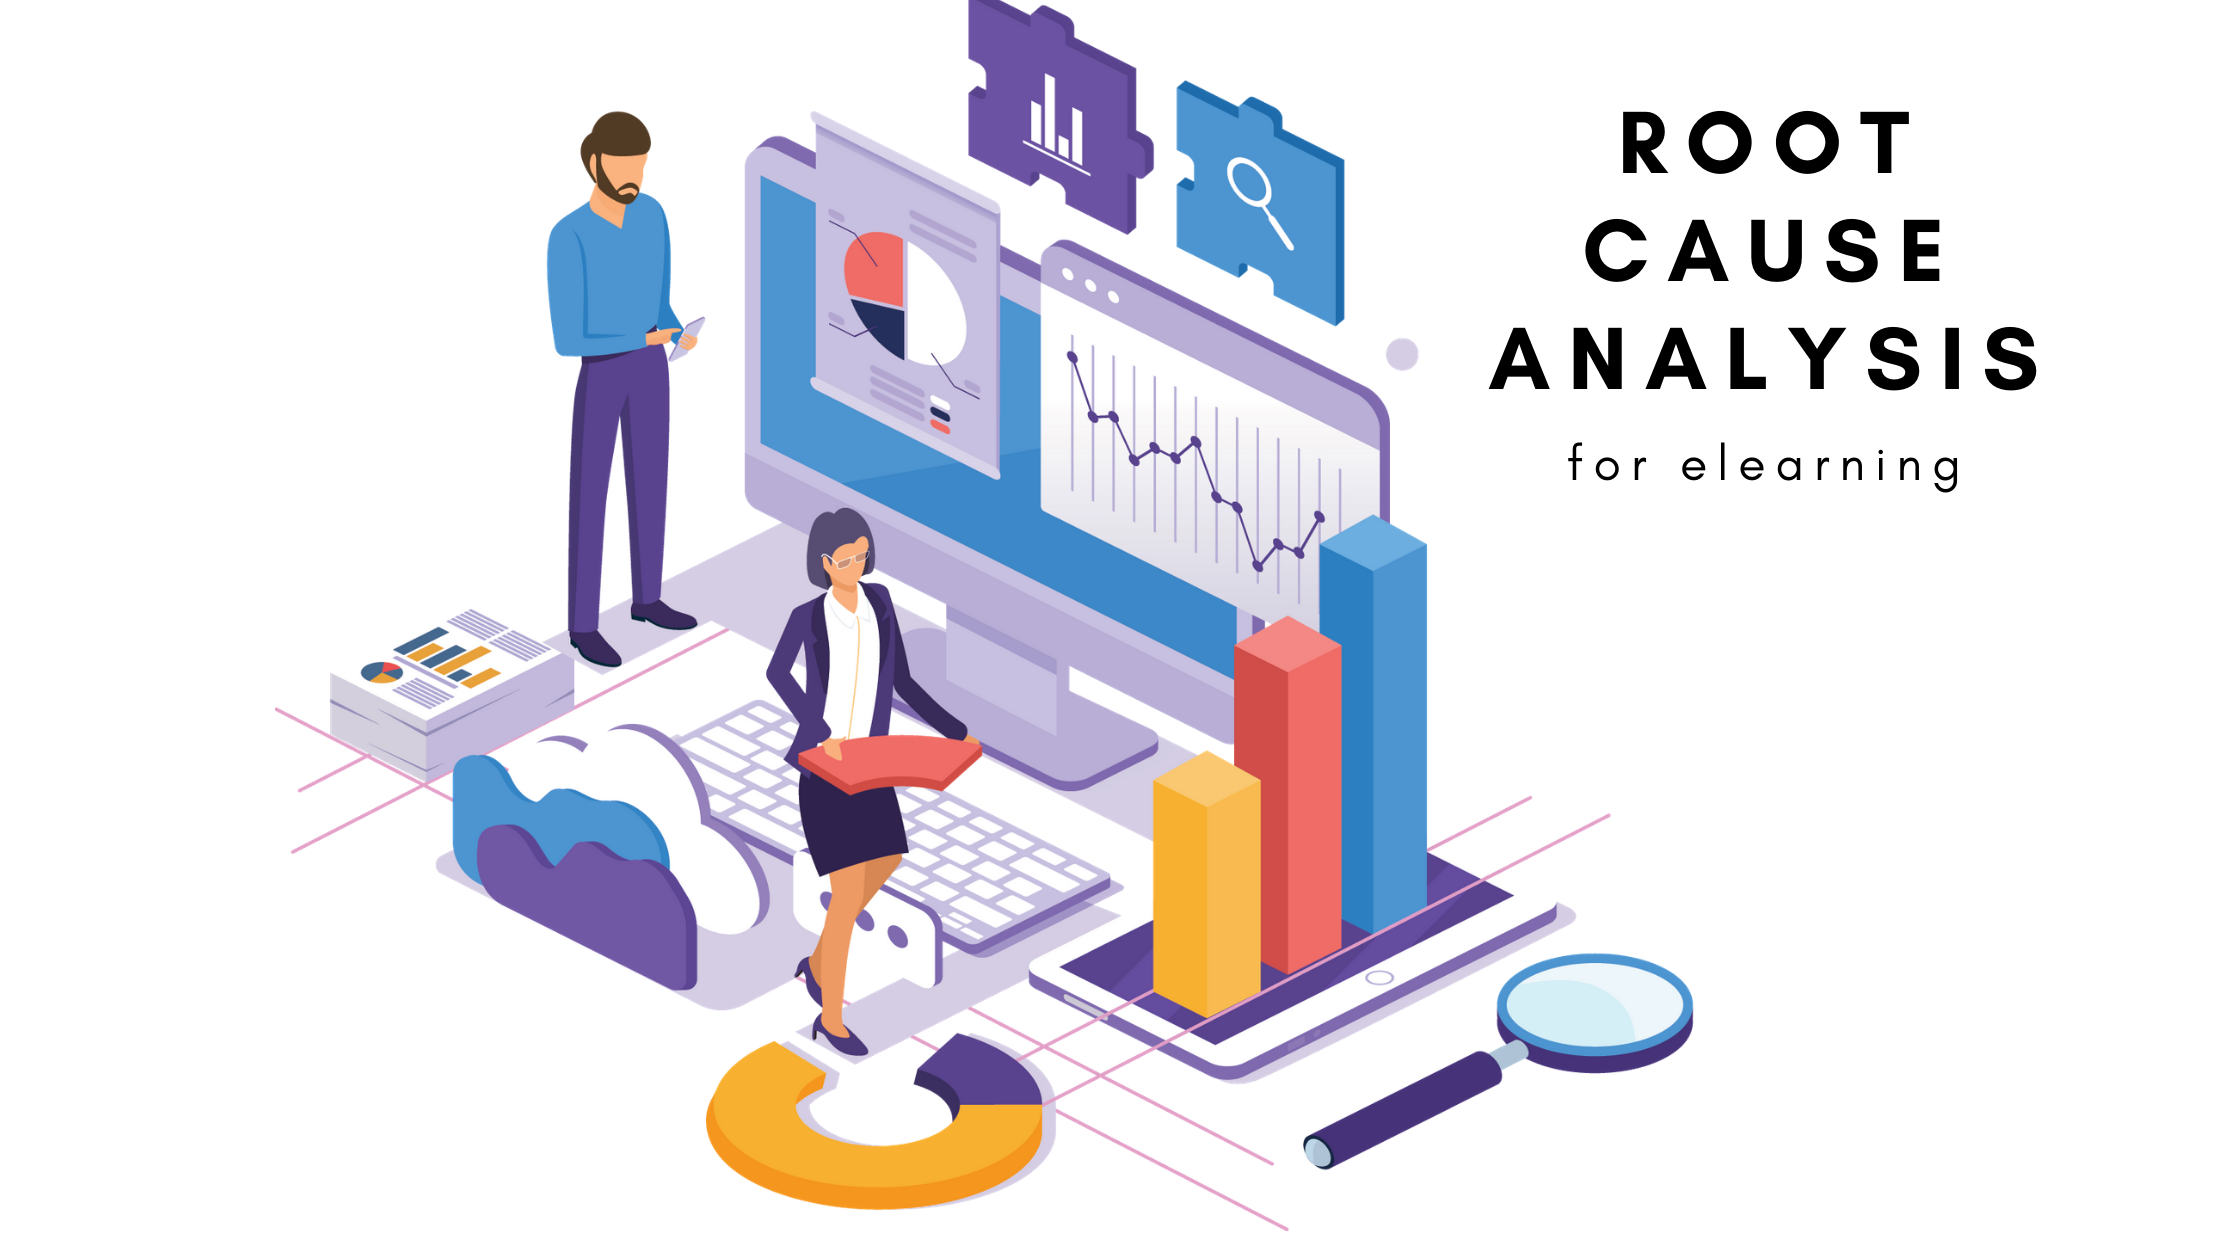 Root cause analysis for elearning objectives